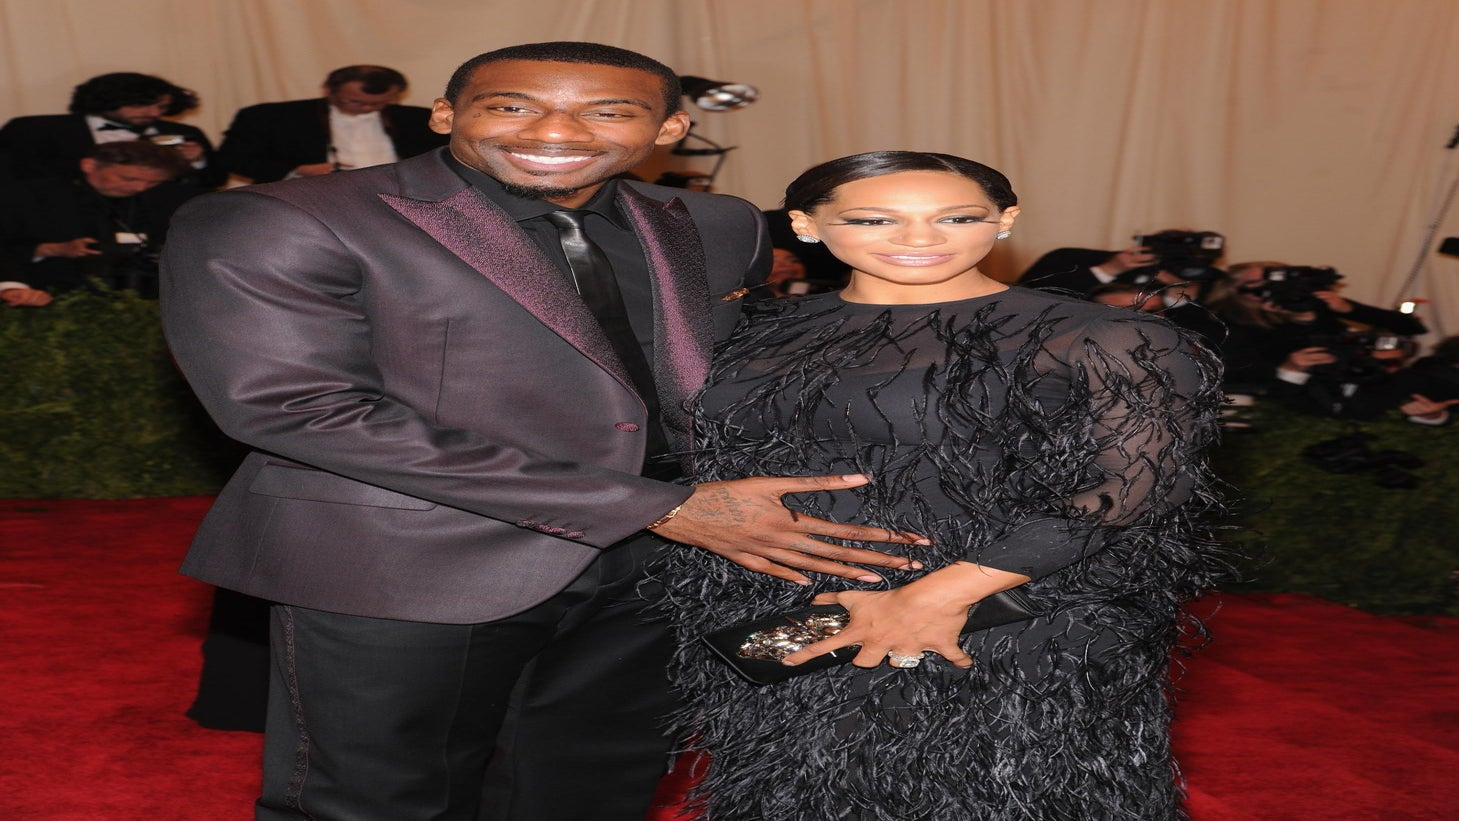 Amar'e Stoudemire and Wife Reveal Baby Name